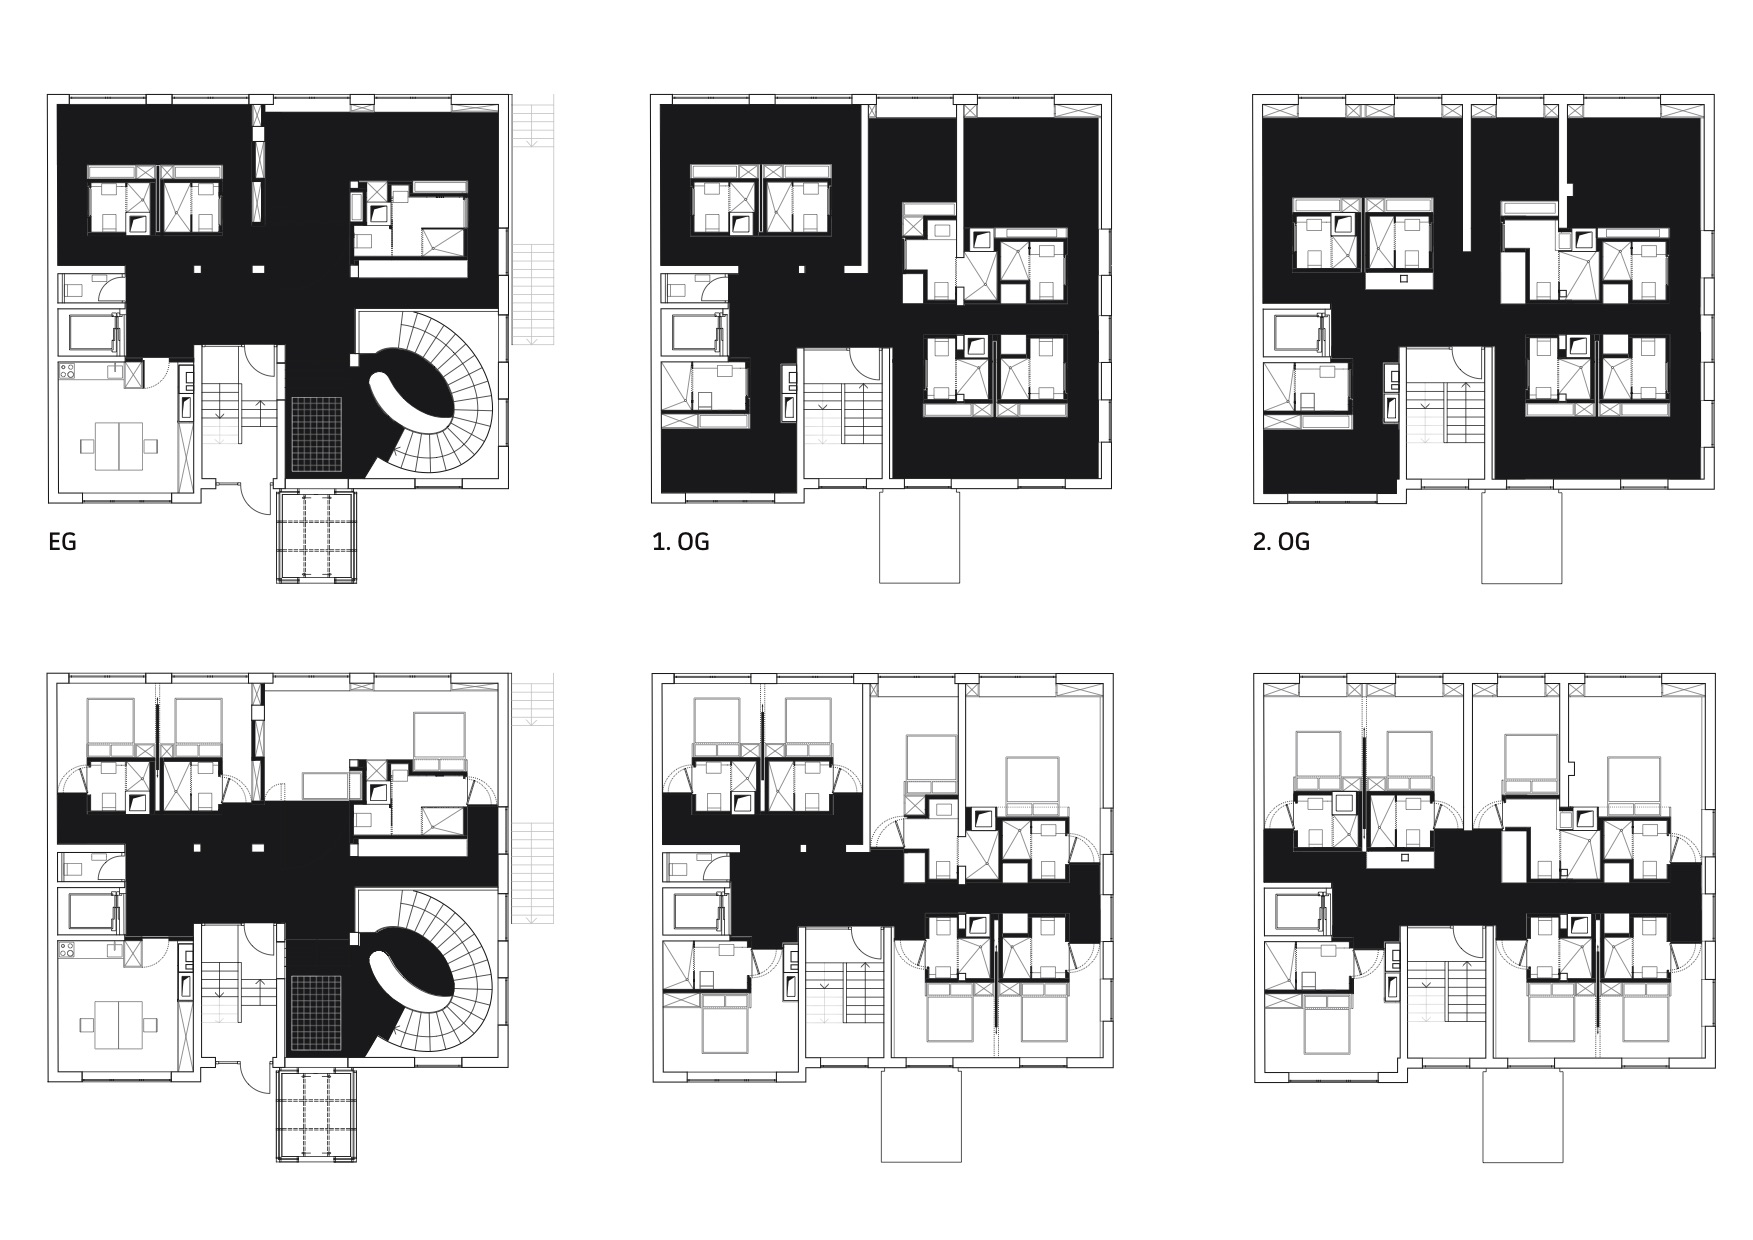 schematic drawing - public and private spaces. 2x2